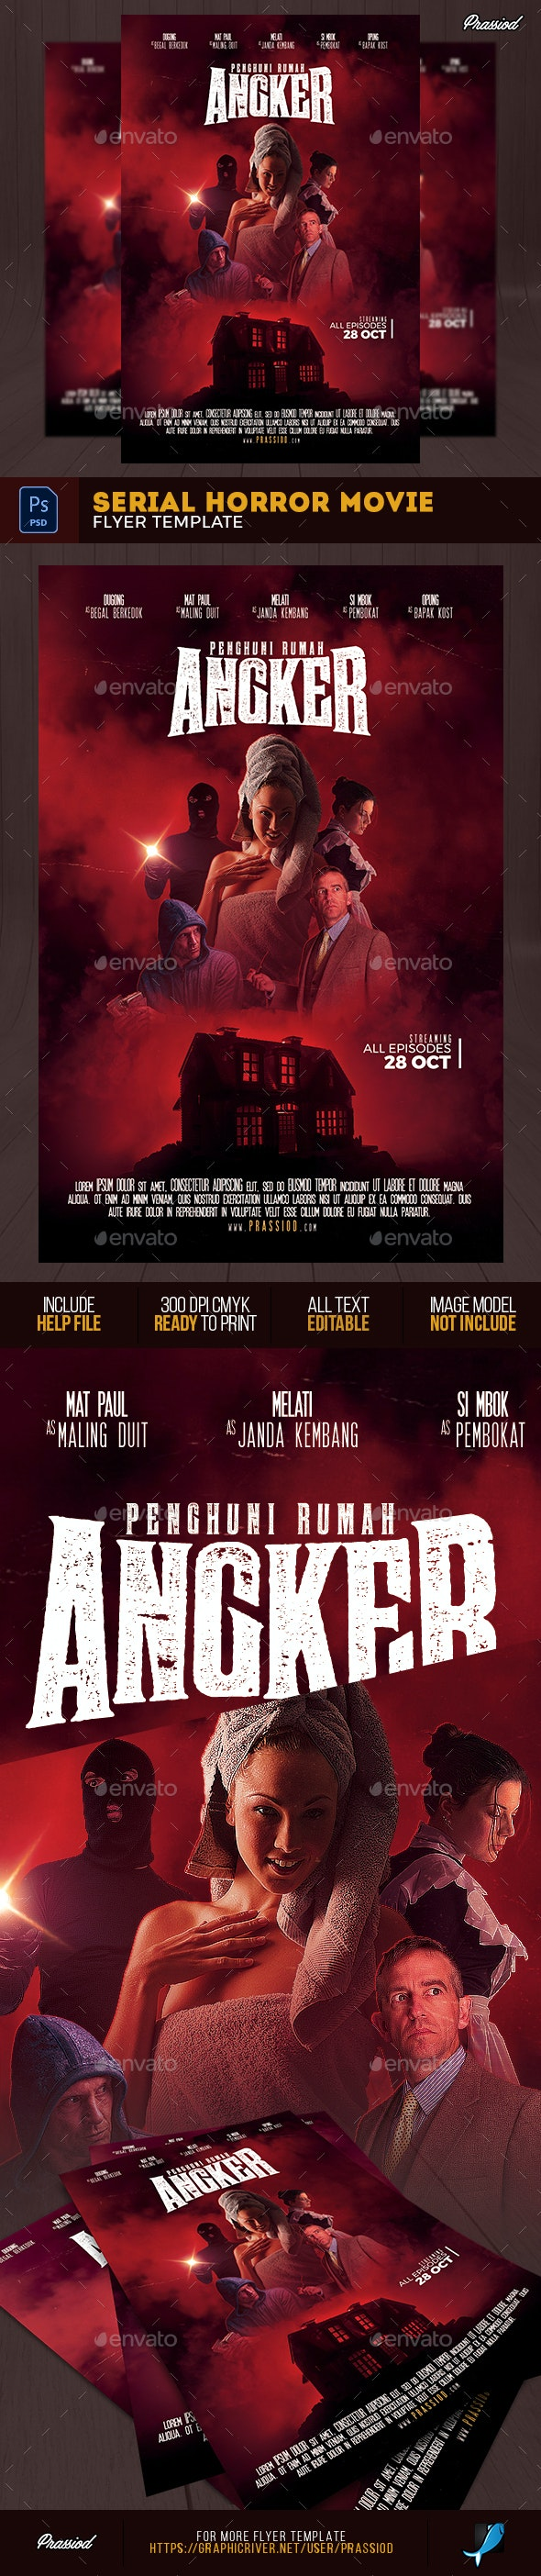 Serial Horror Movie Flyer Template - Flyers Print Templates